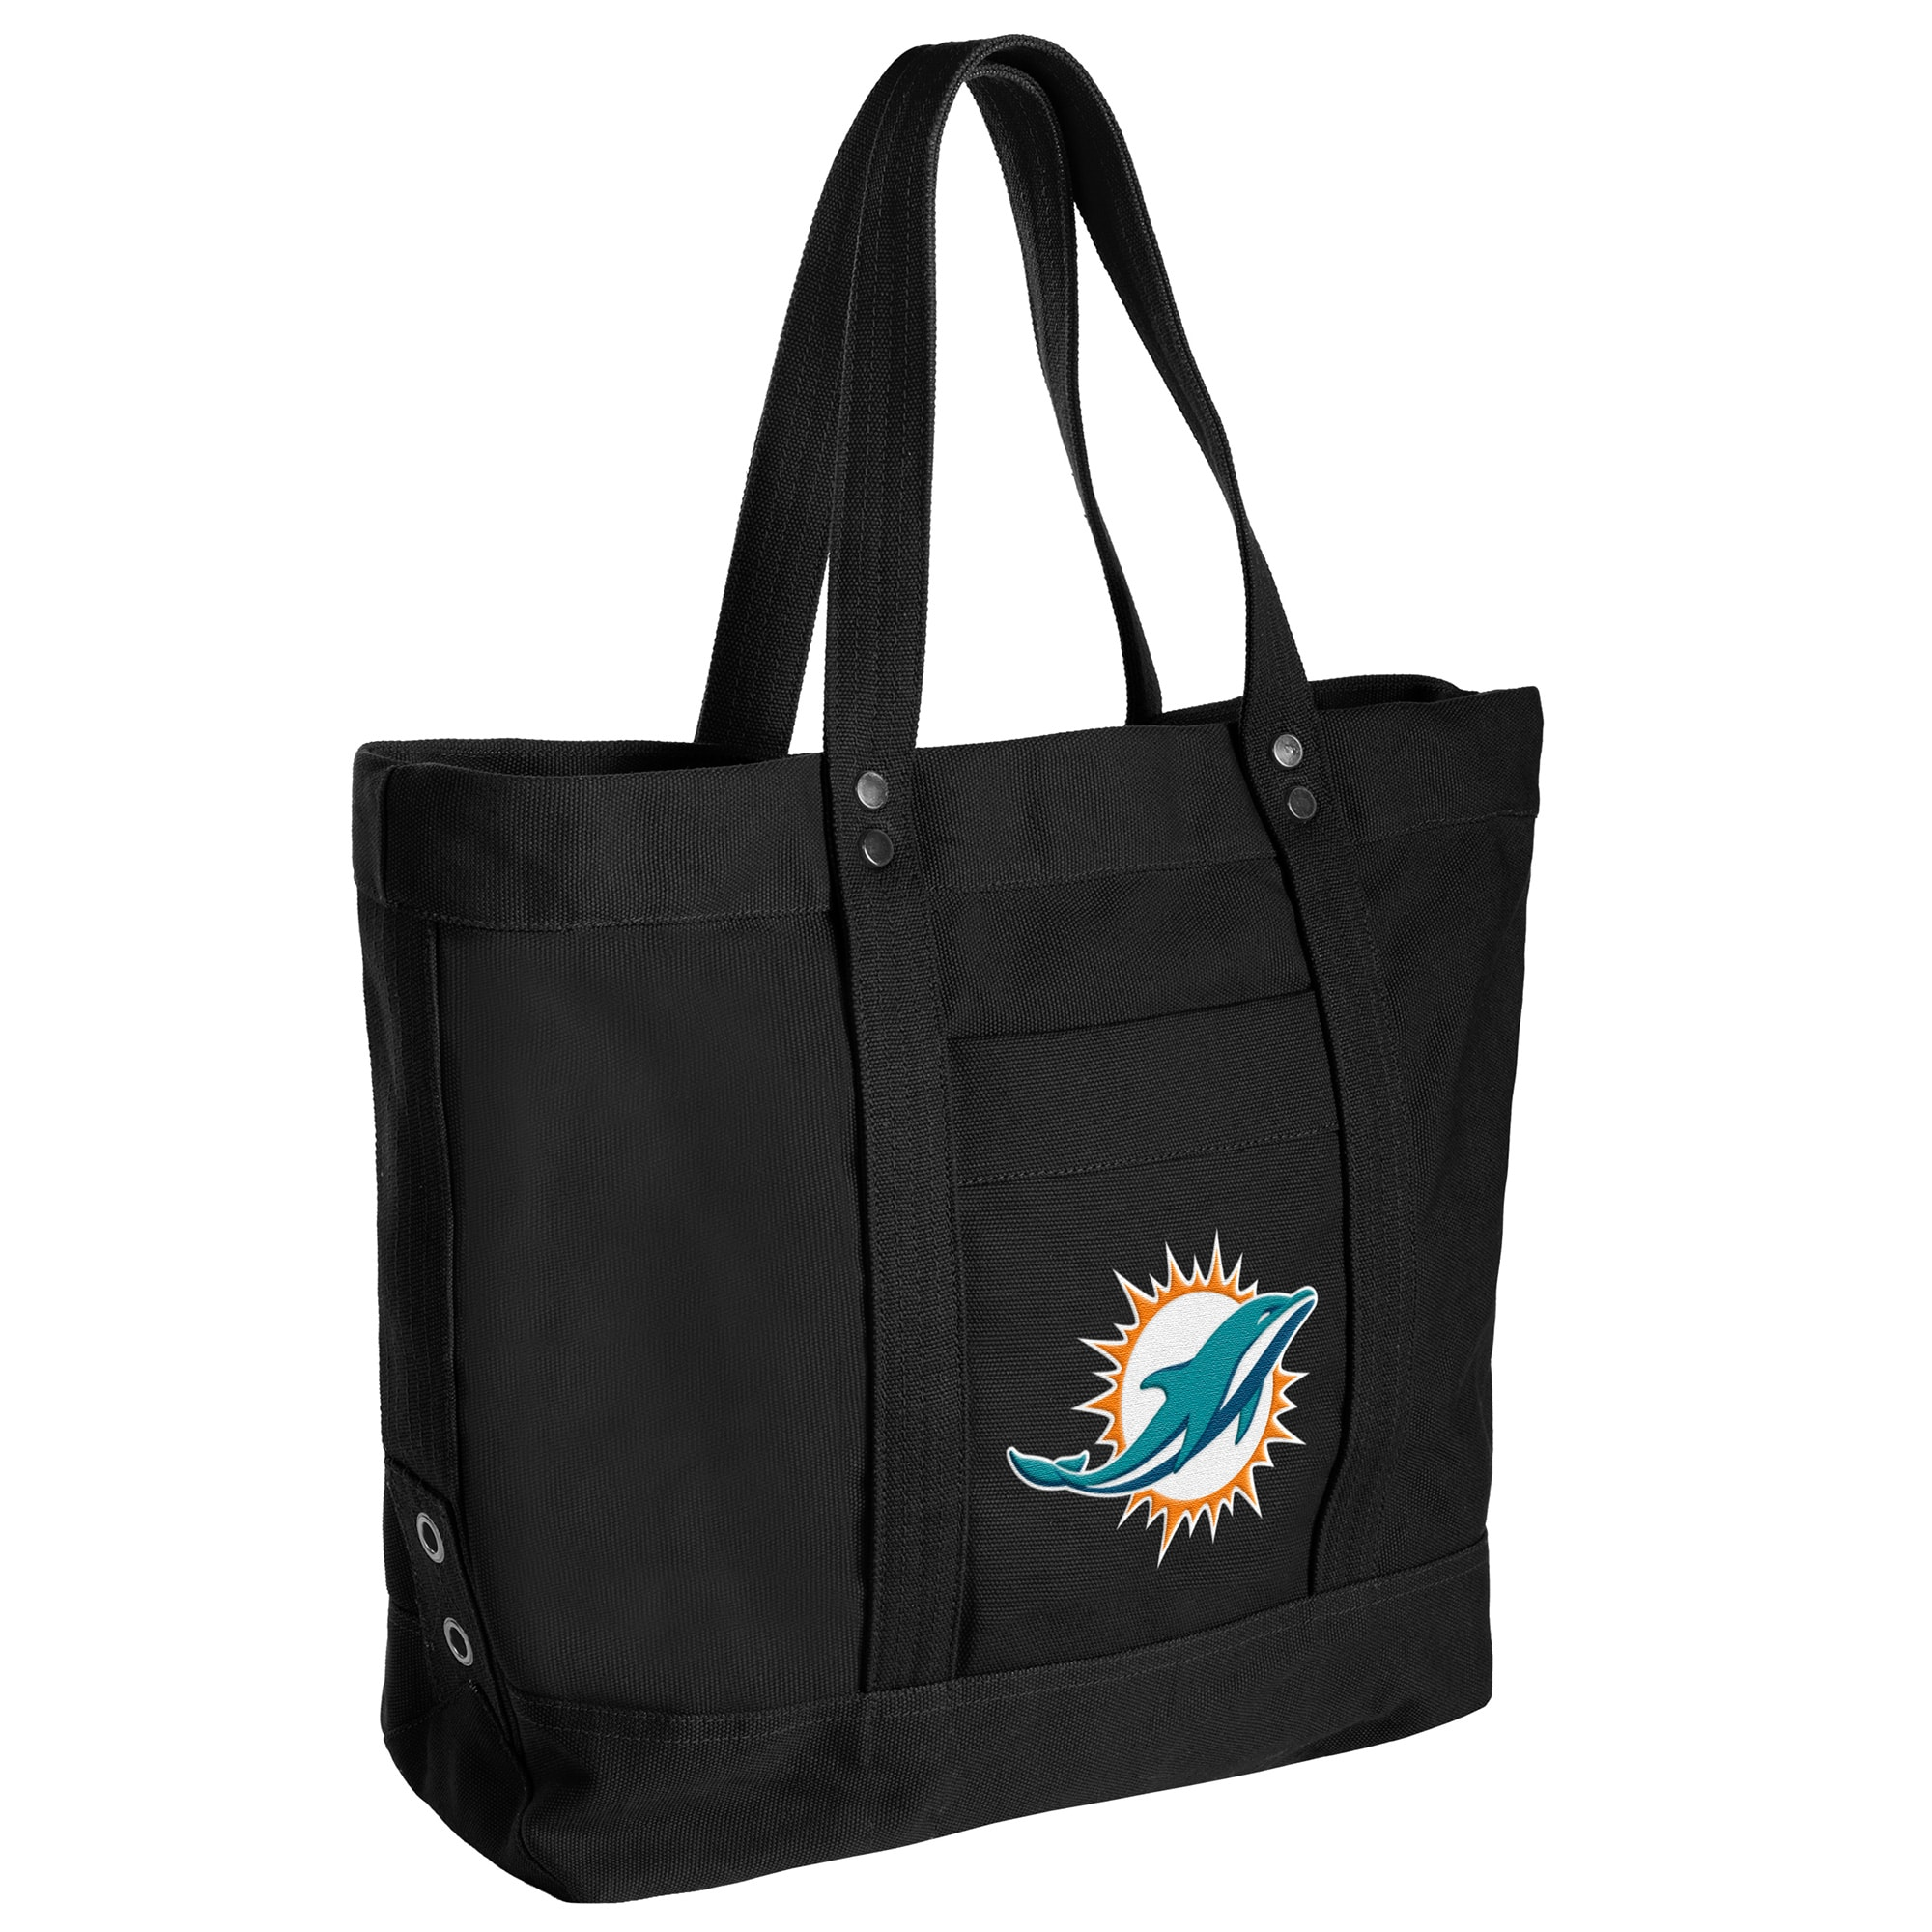 Miami Dolphins Women's High End Canvas Tote